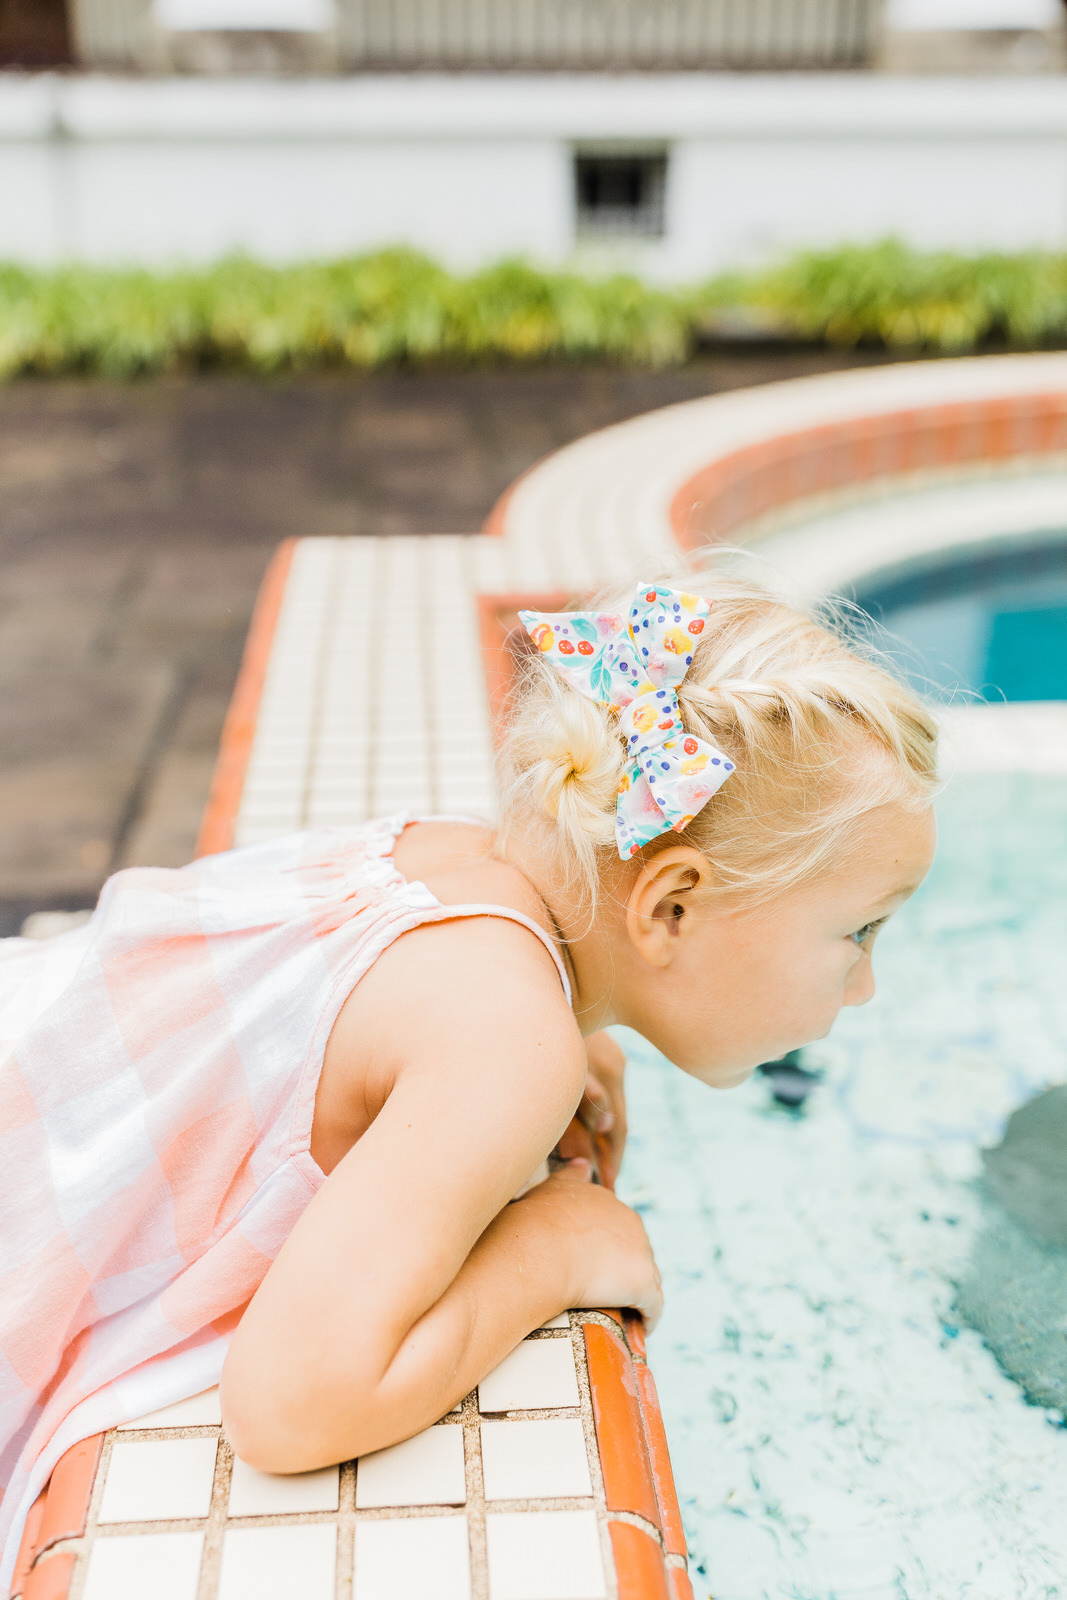 big-island-photographer-small-business-toddler-girls-bows-summer-collection-2398.jpg